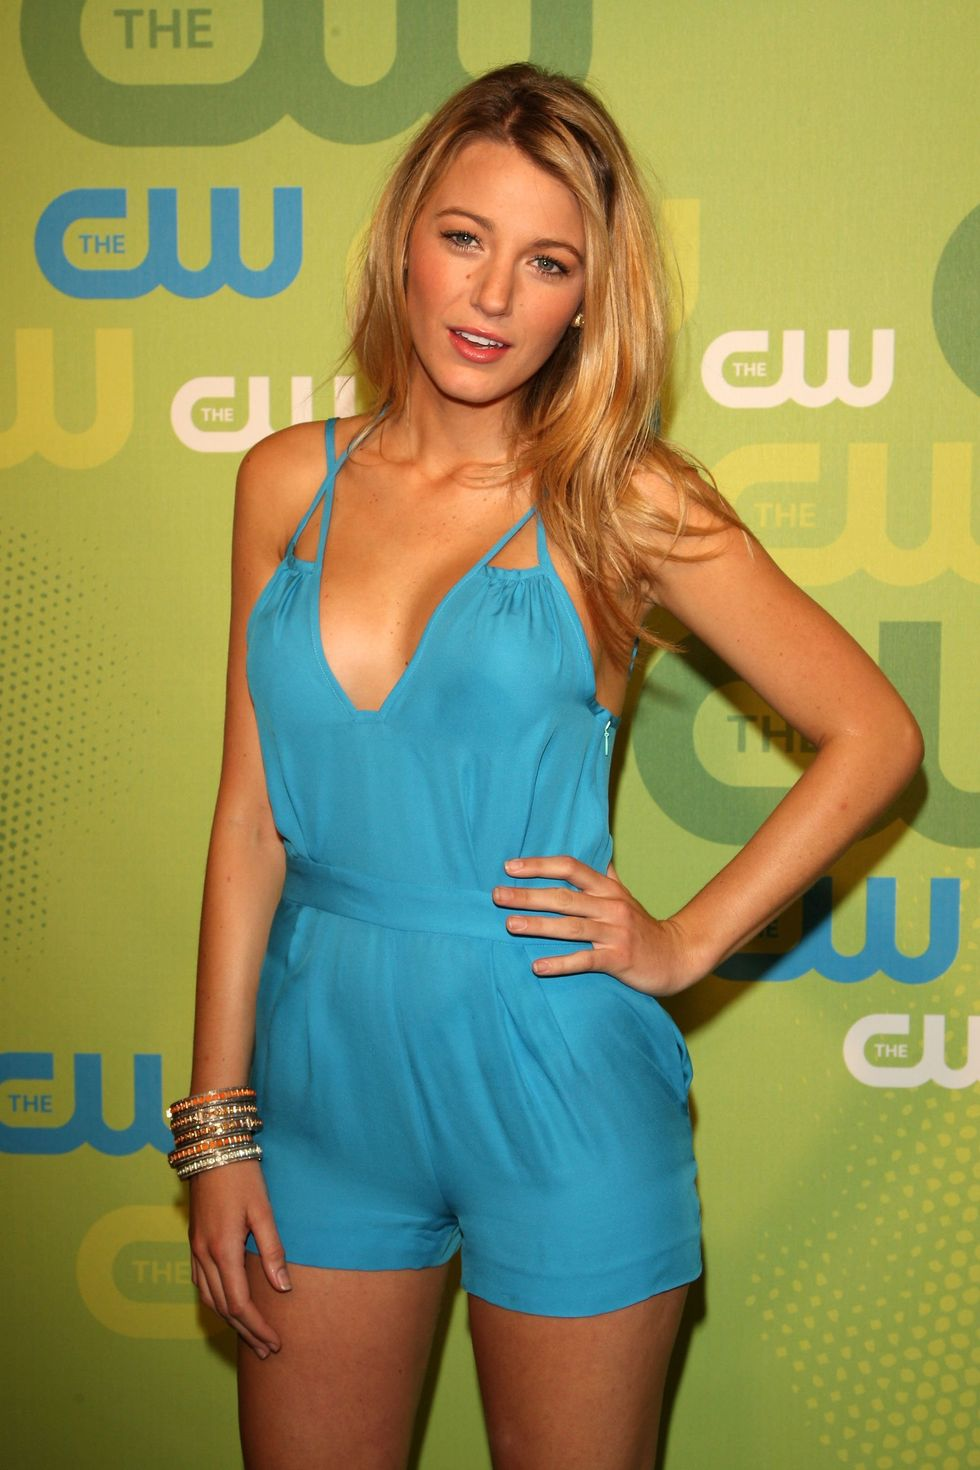 blake-lively-2009-the-cw-network-upfront-in-new-york-10